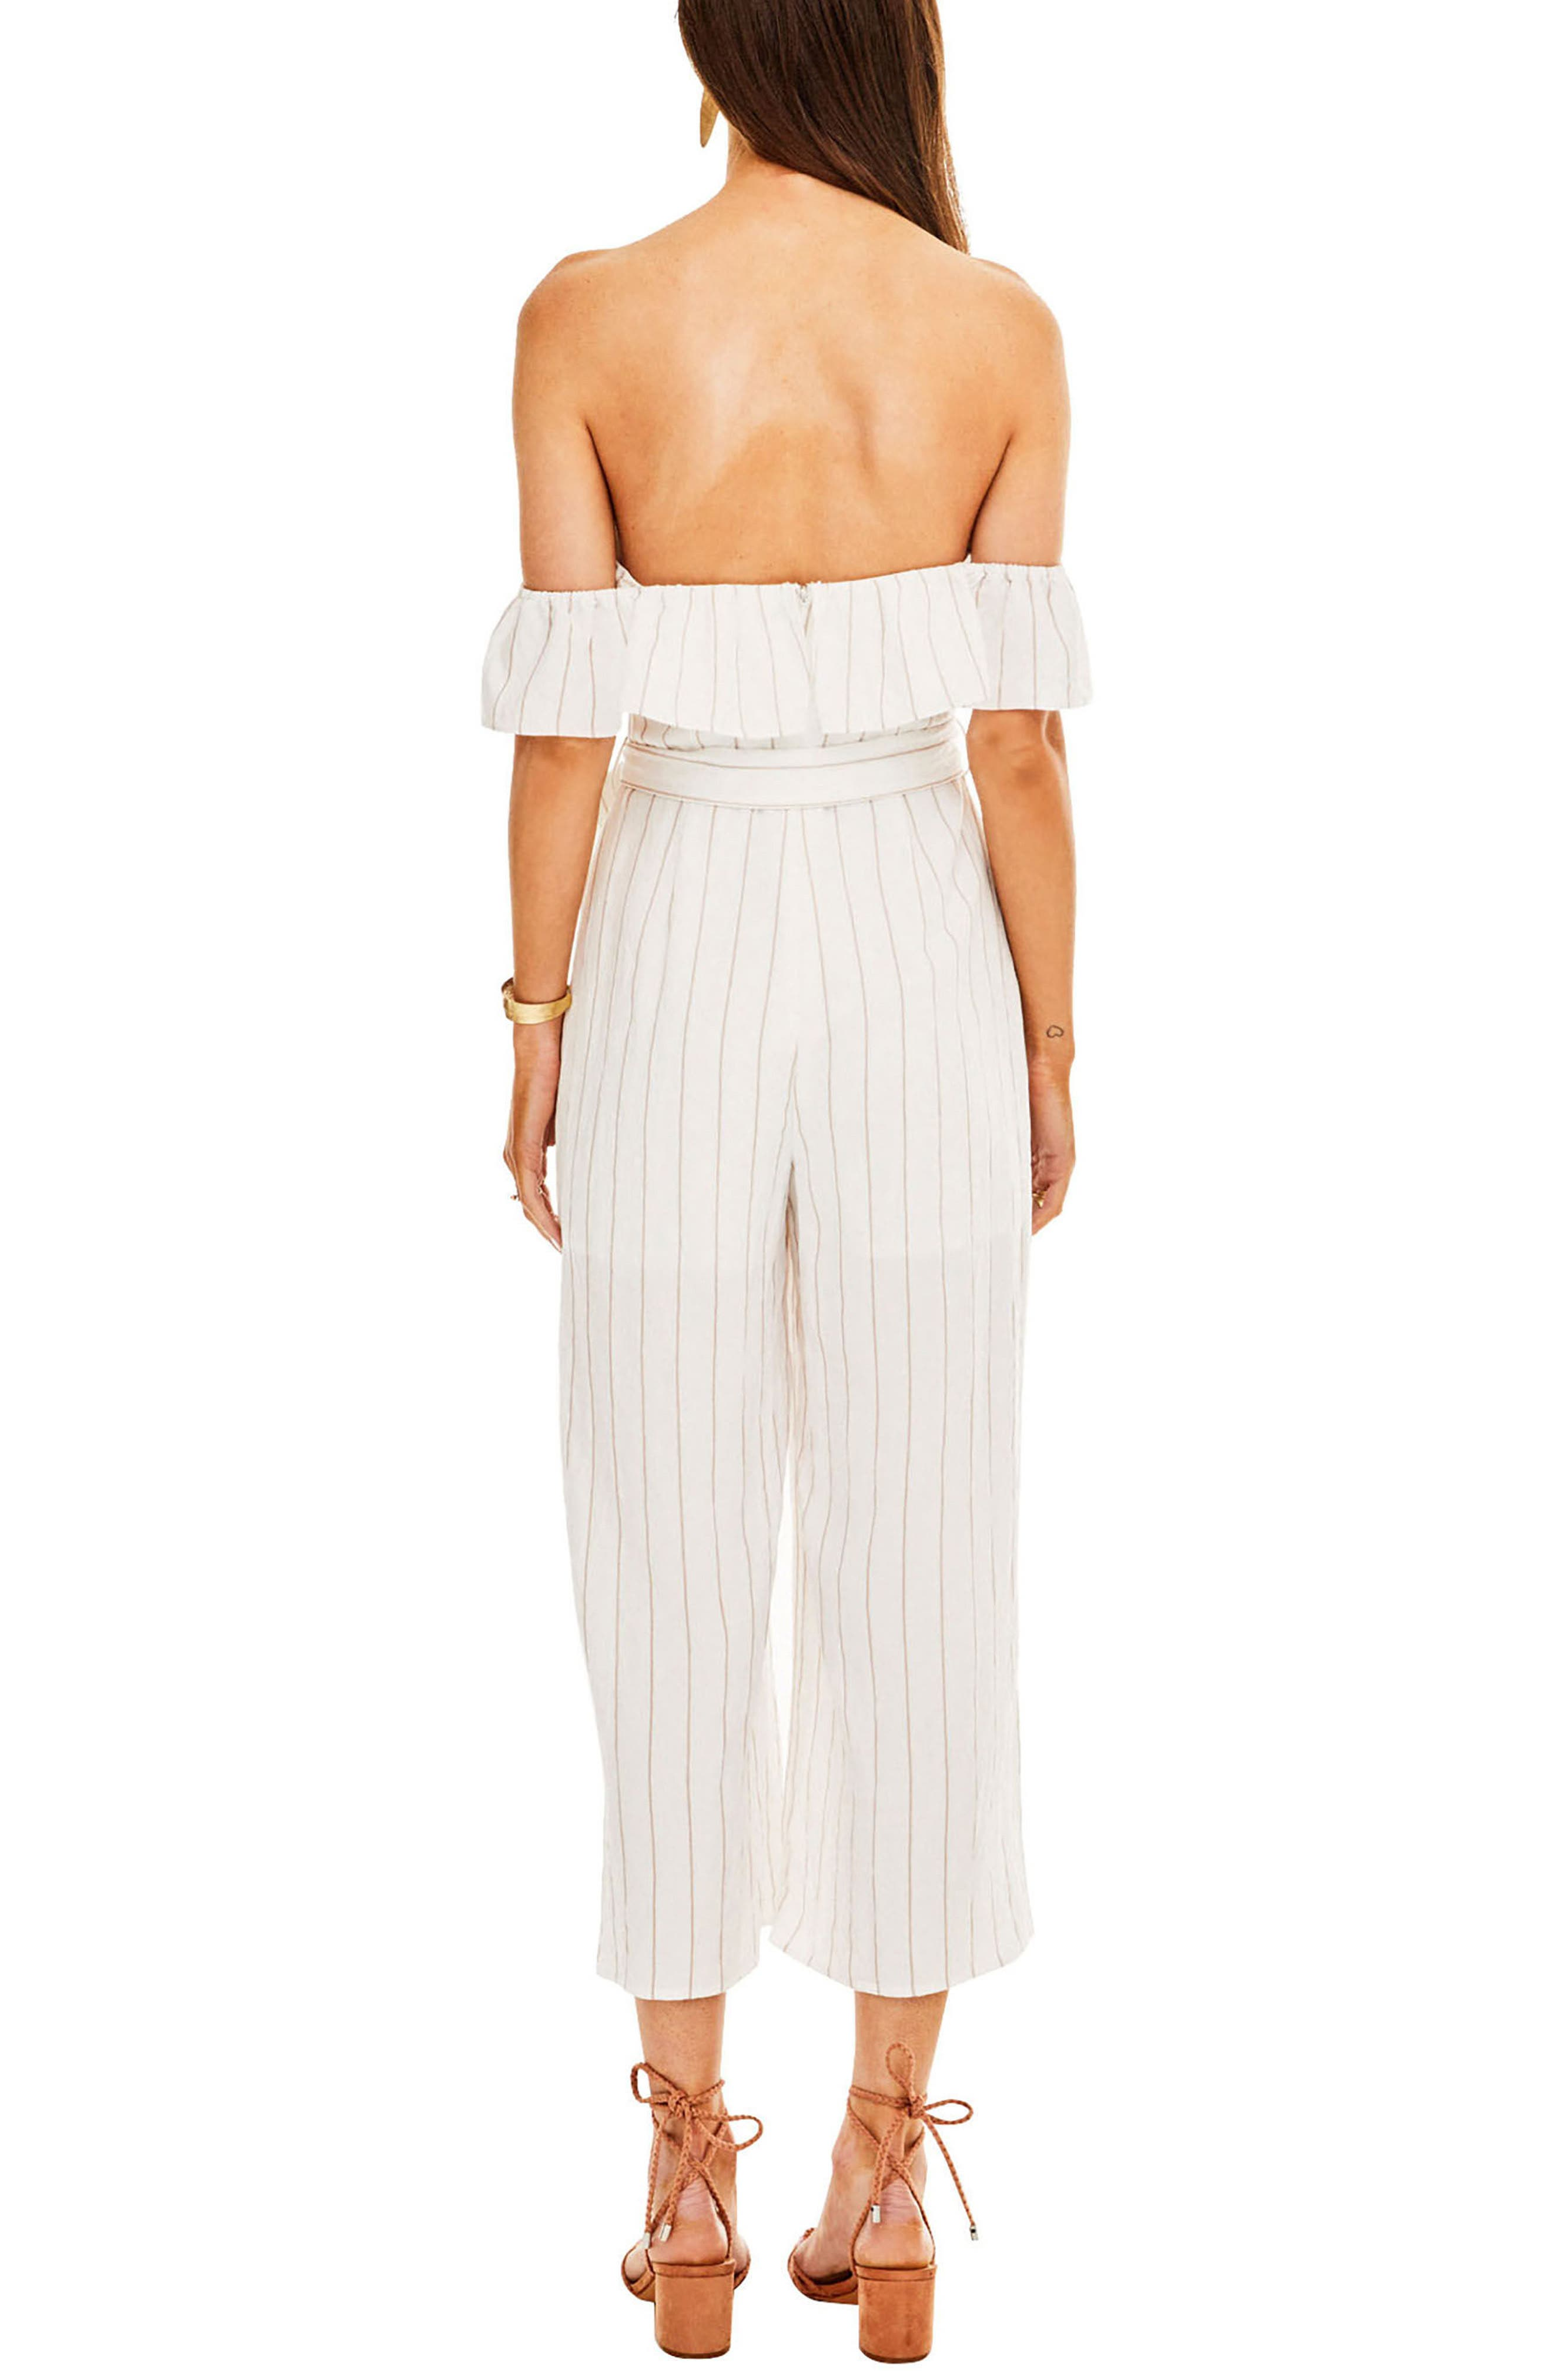 ASTR Keely Strapless Jumpsuit,                             Alternate thumbnail 2, color,                             White-Taupe Stripe